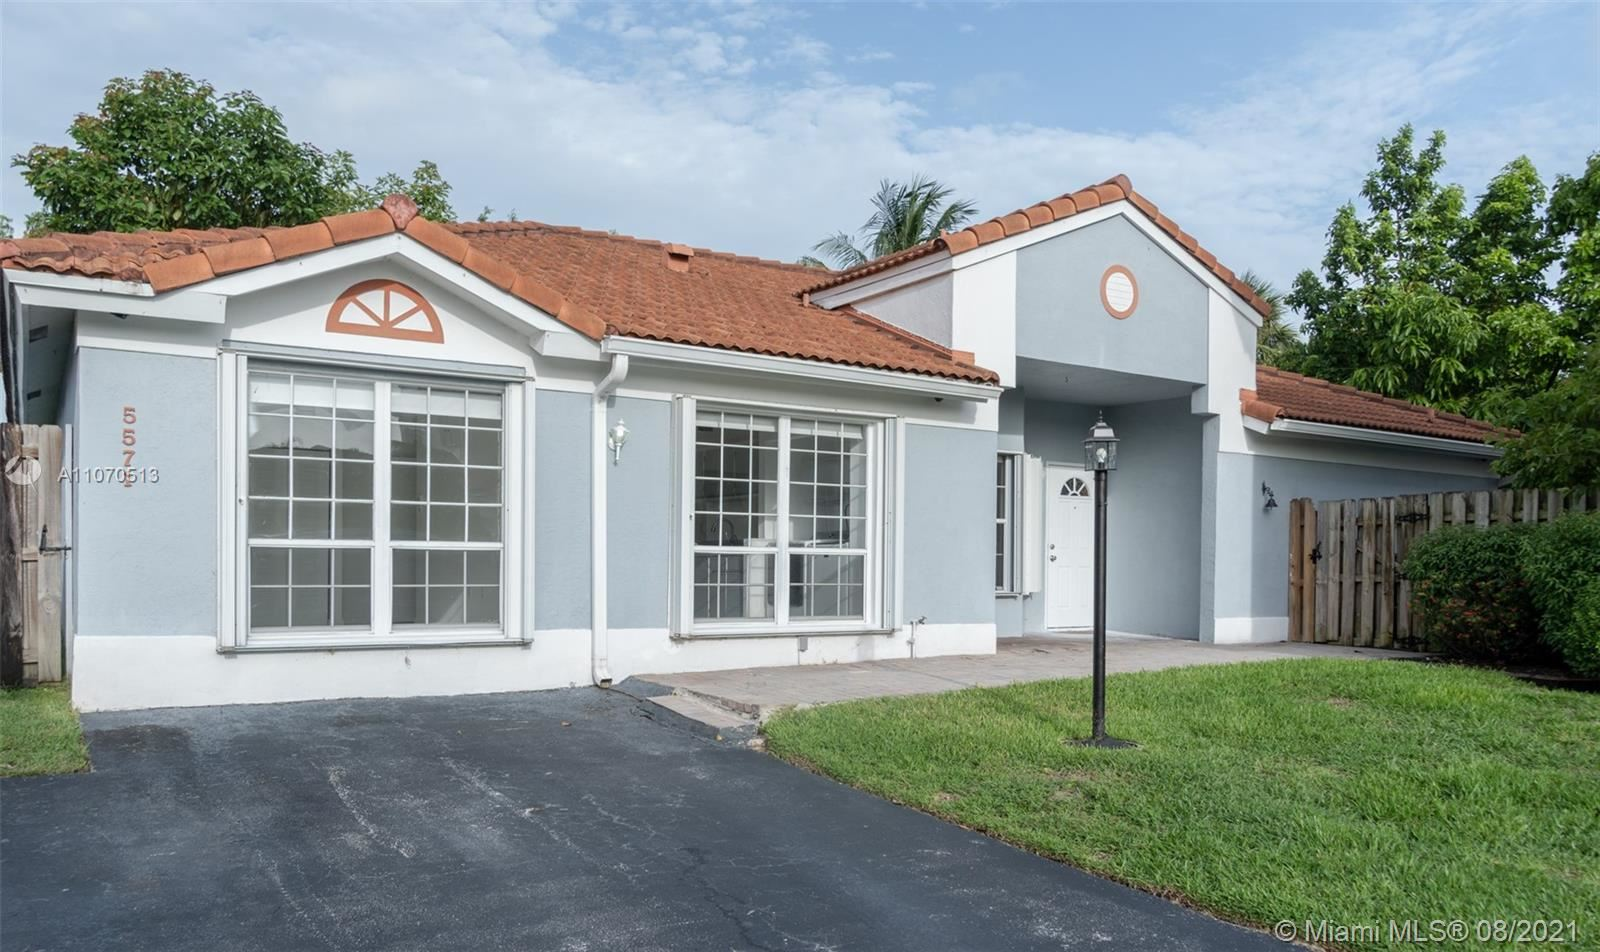 5571 NW 102nd Ct, Doral, FL 33178 - #: A11070513